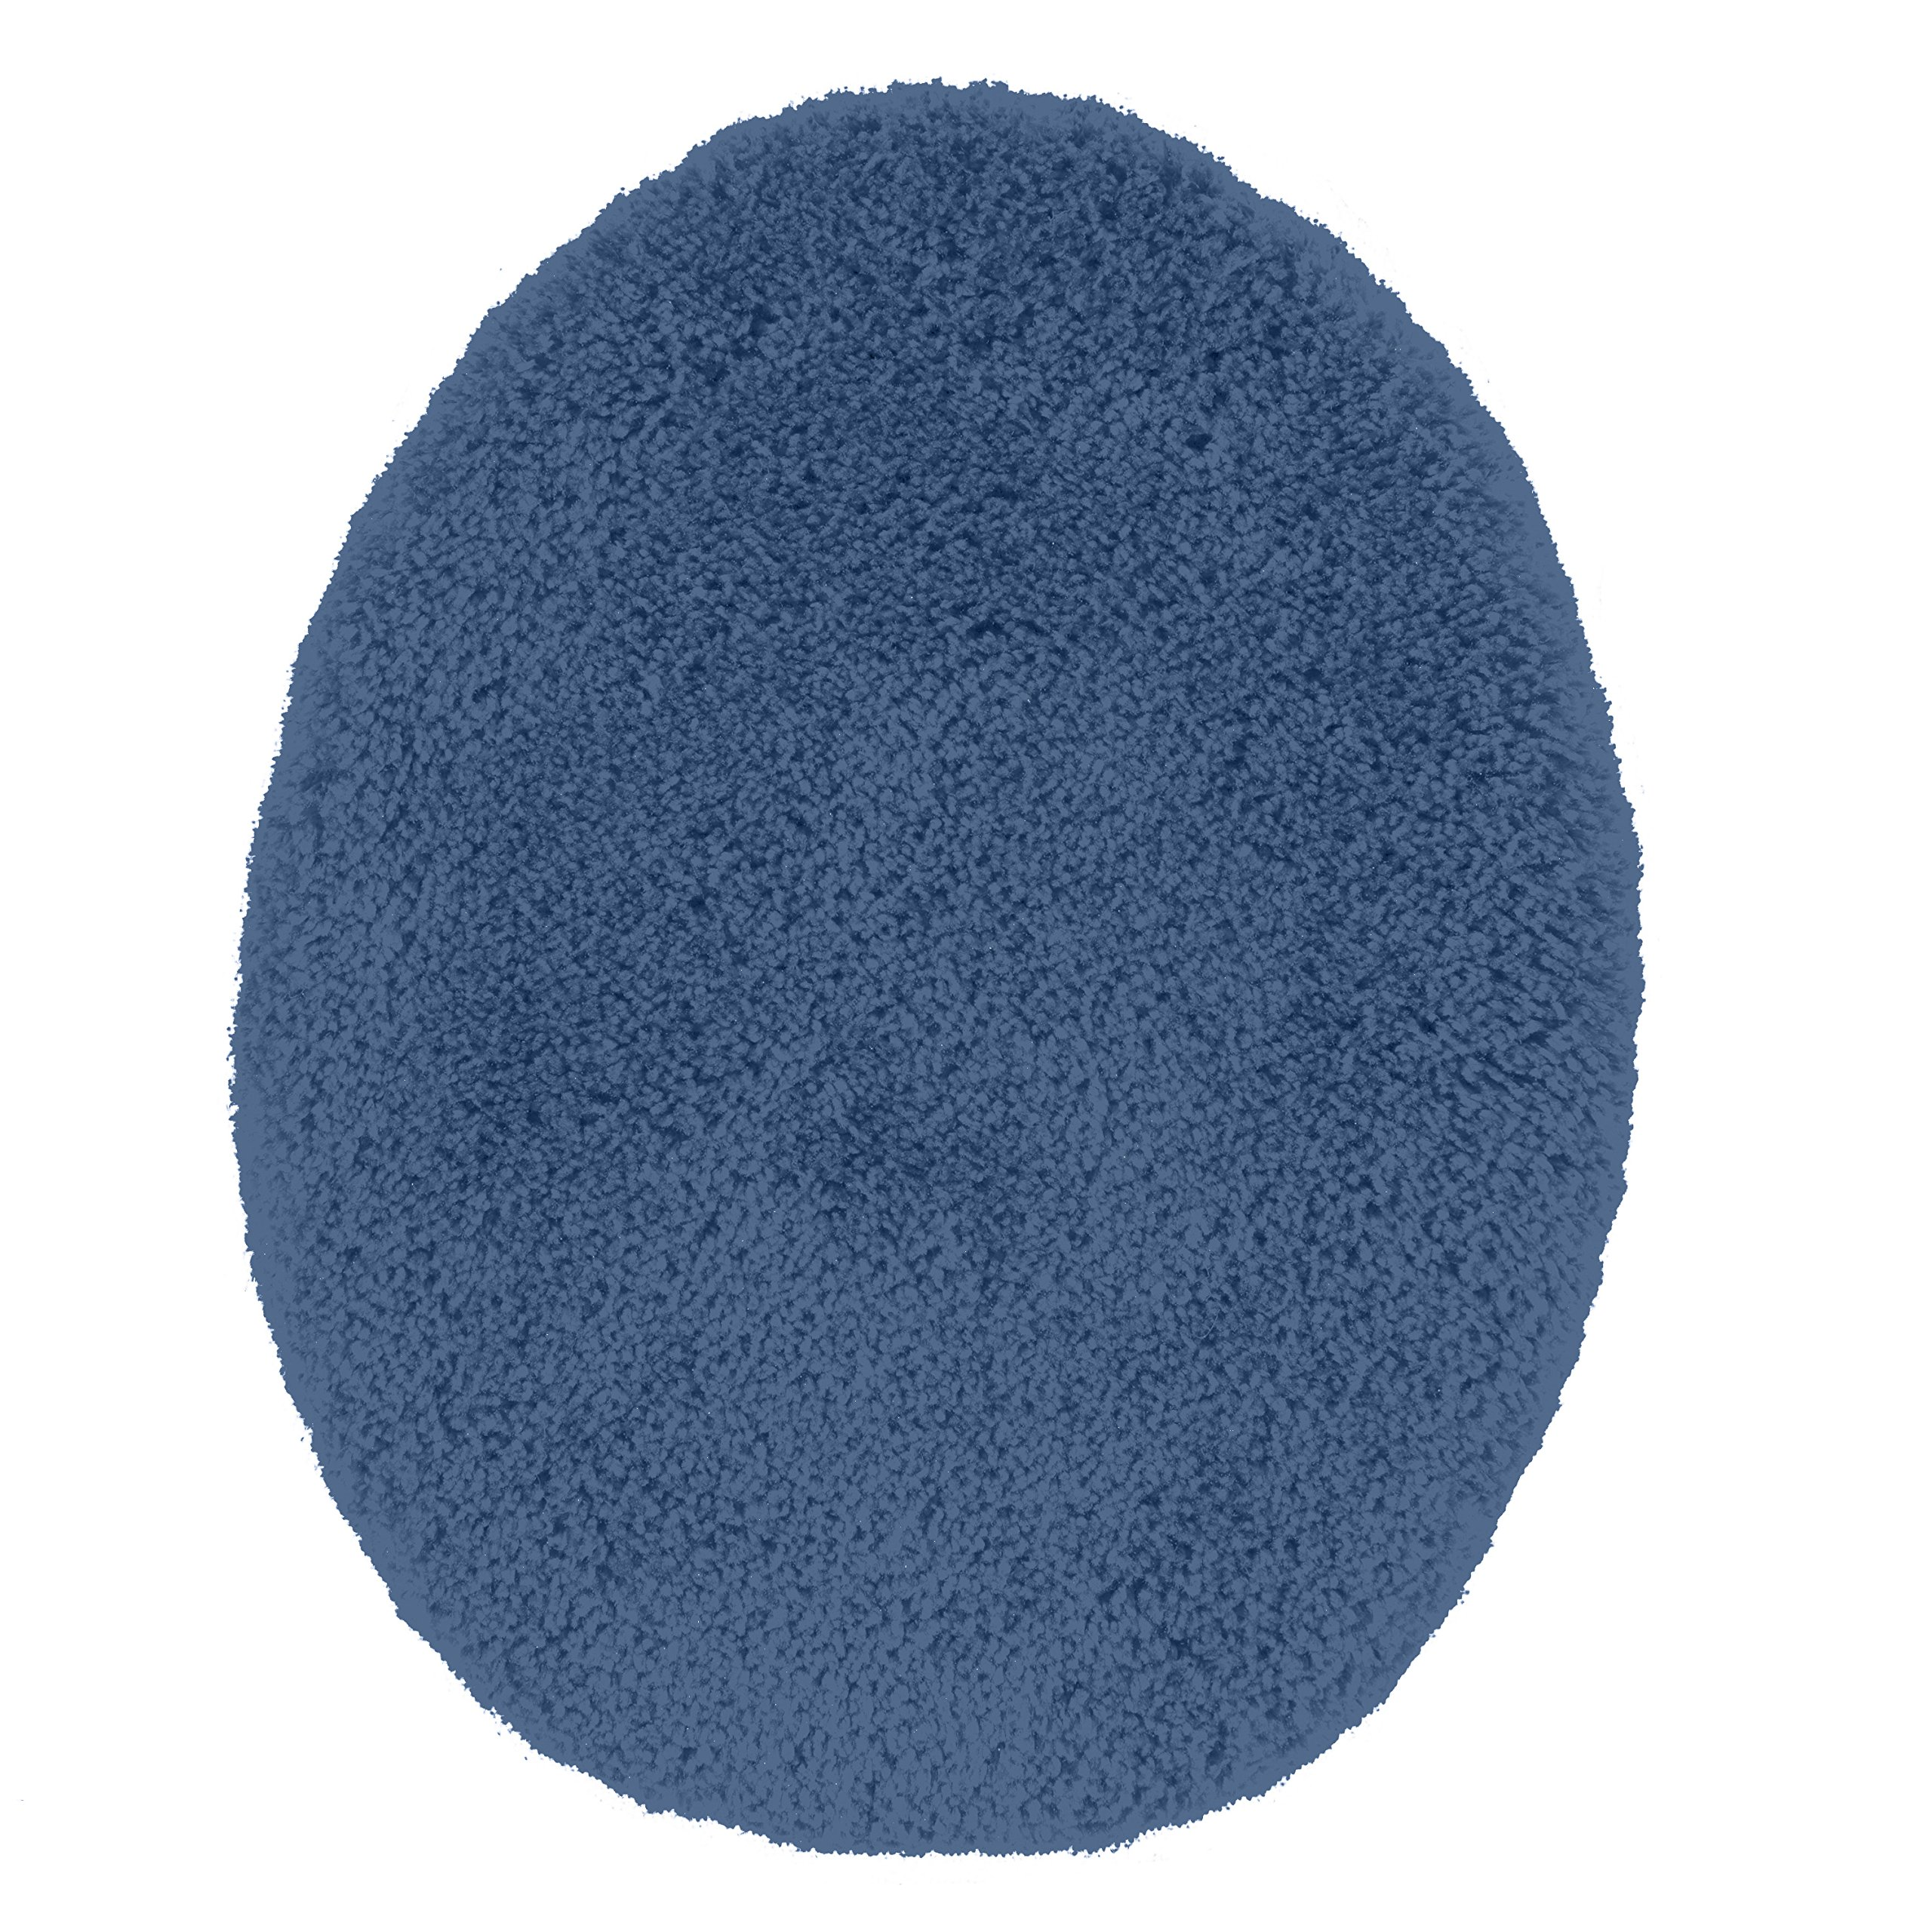 Maples Rugs Seat Cloud Bath Washable Standard Toilet Lid Covers